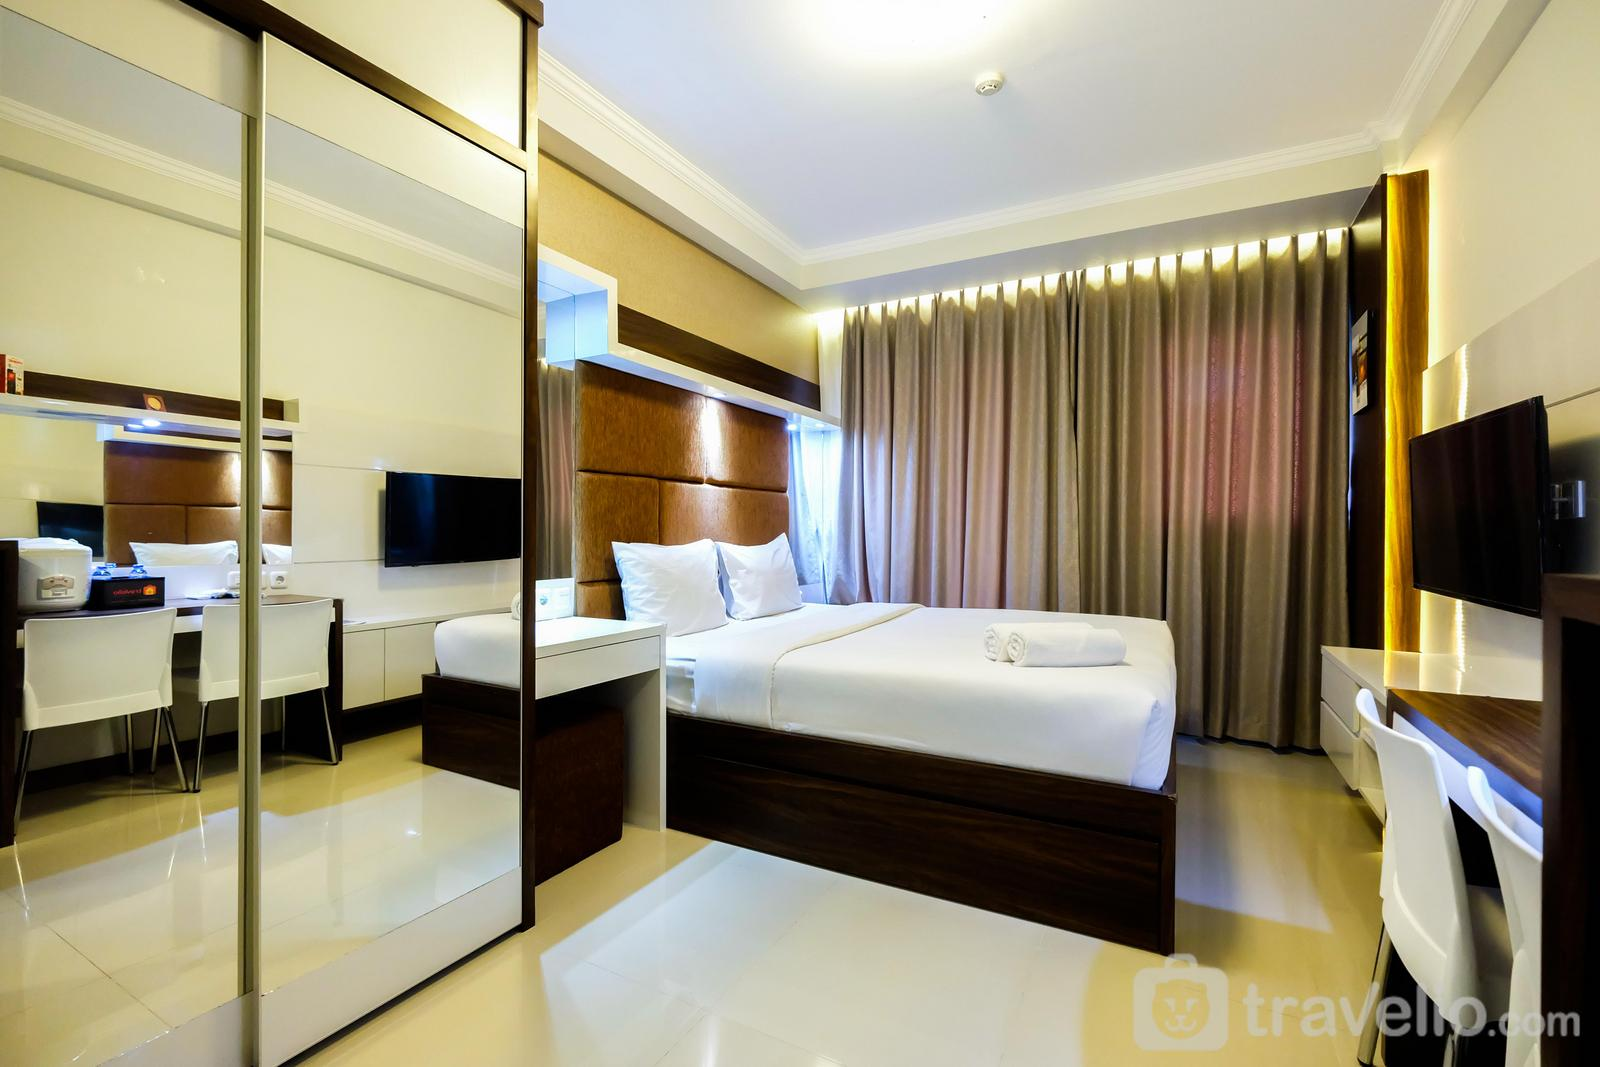 Signature Park Grande M.T Haryono - New Elegant Studio Signature Park Grande Apartment By Travelio